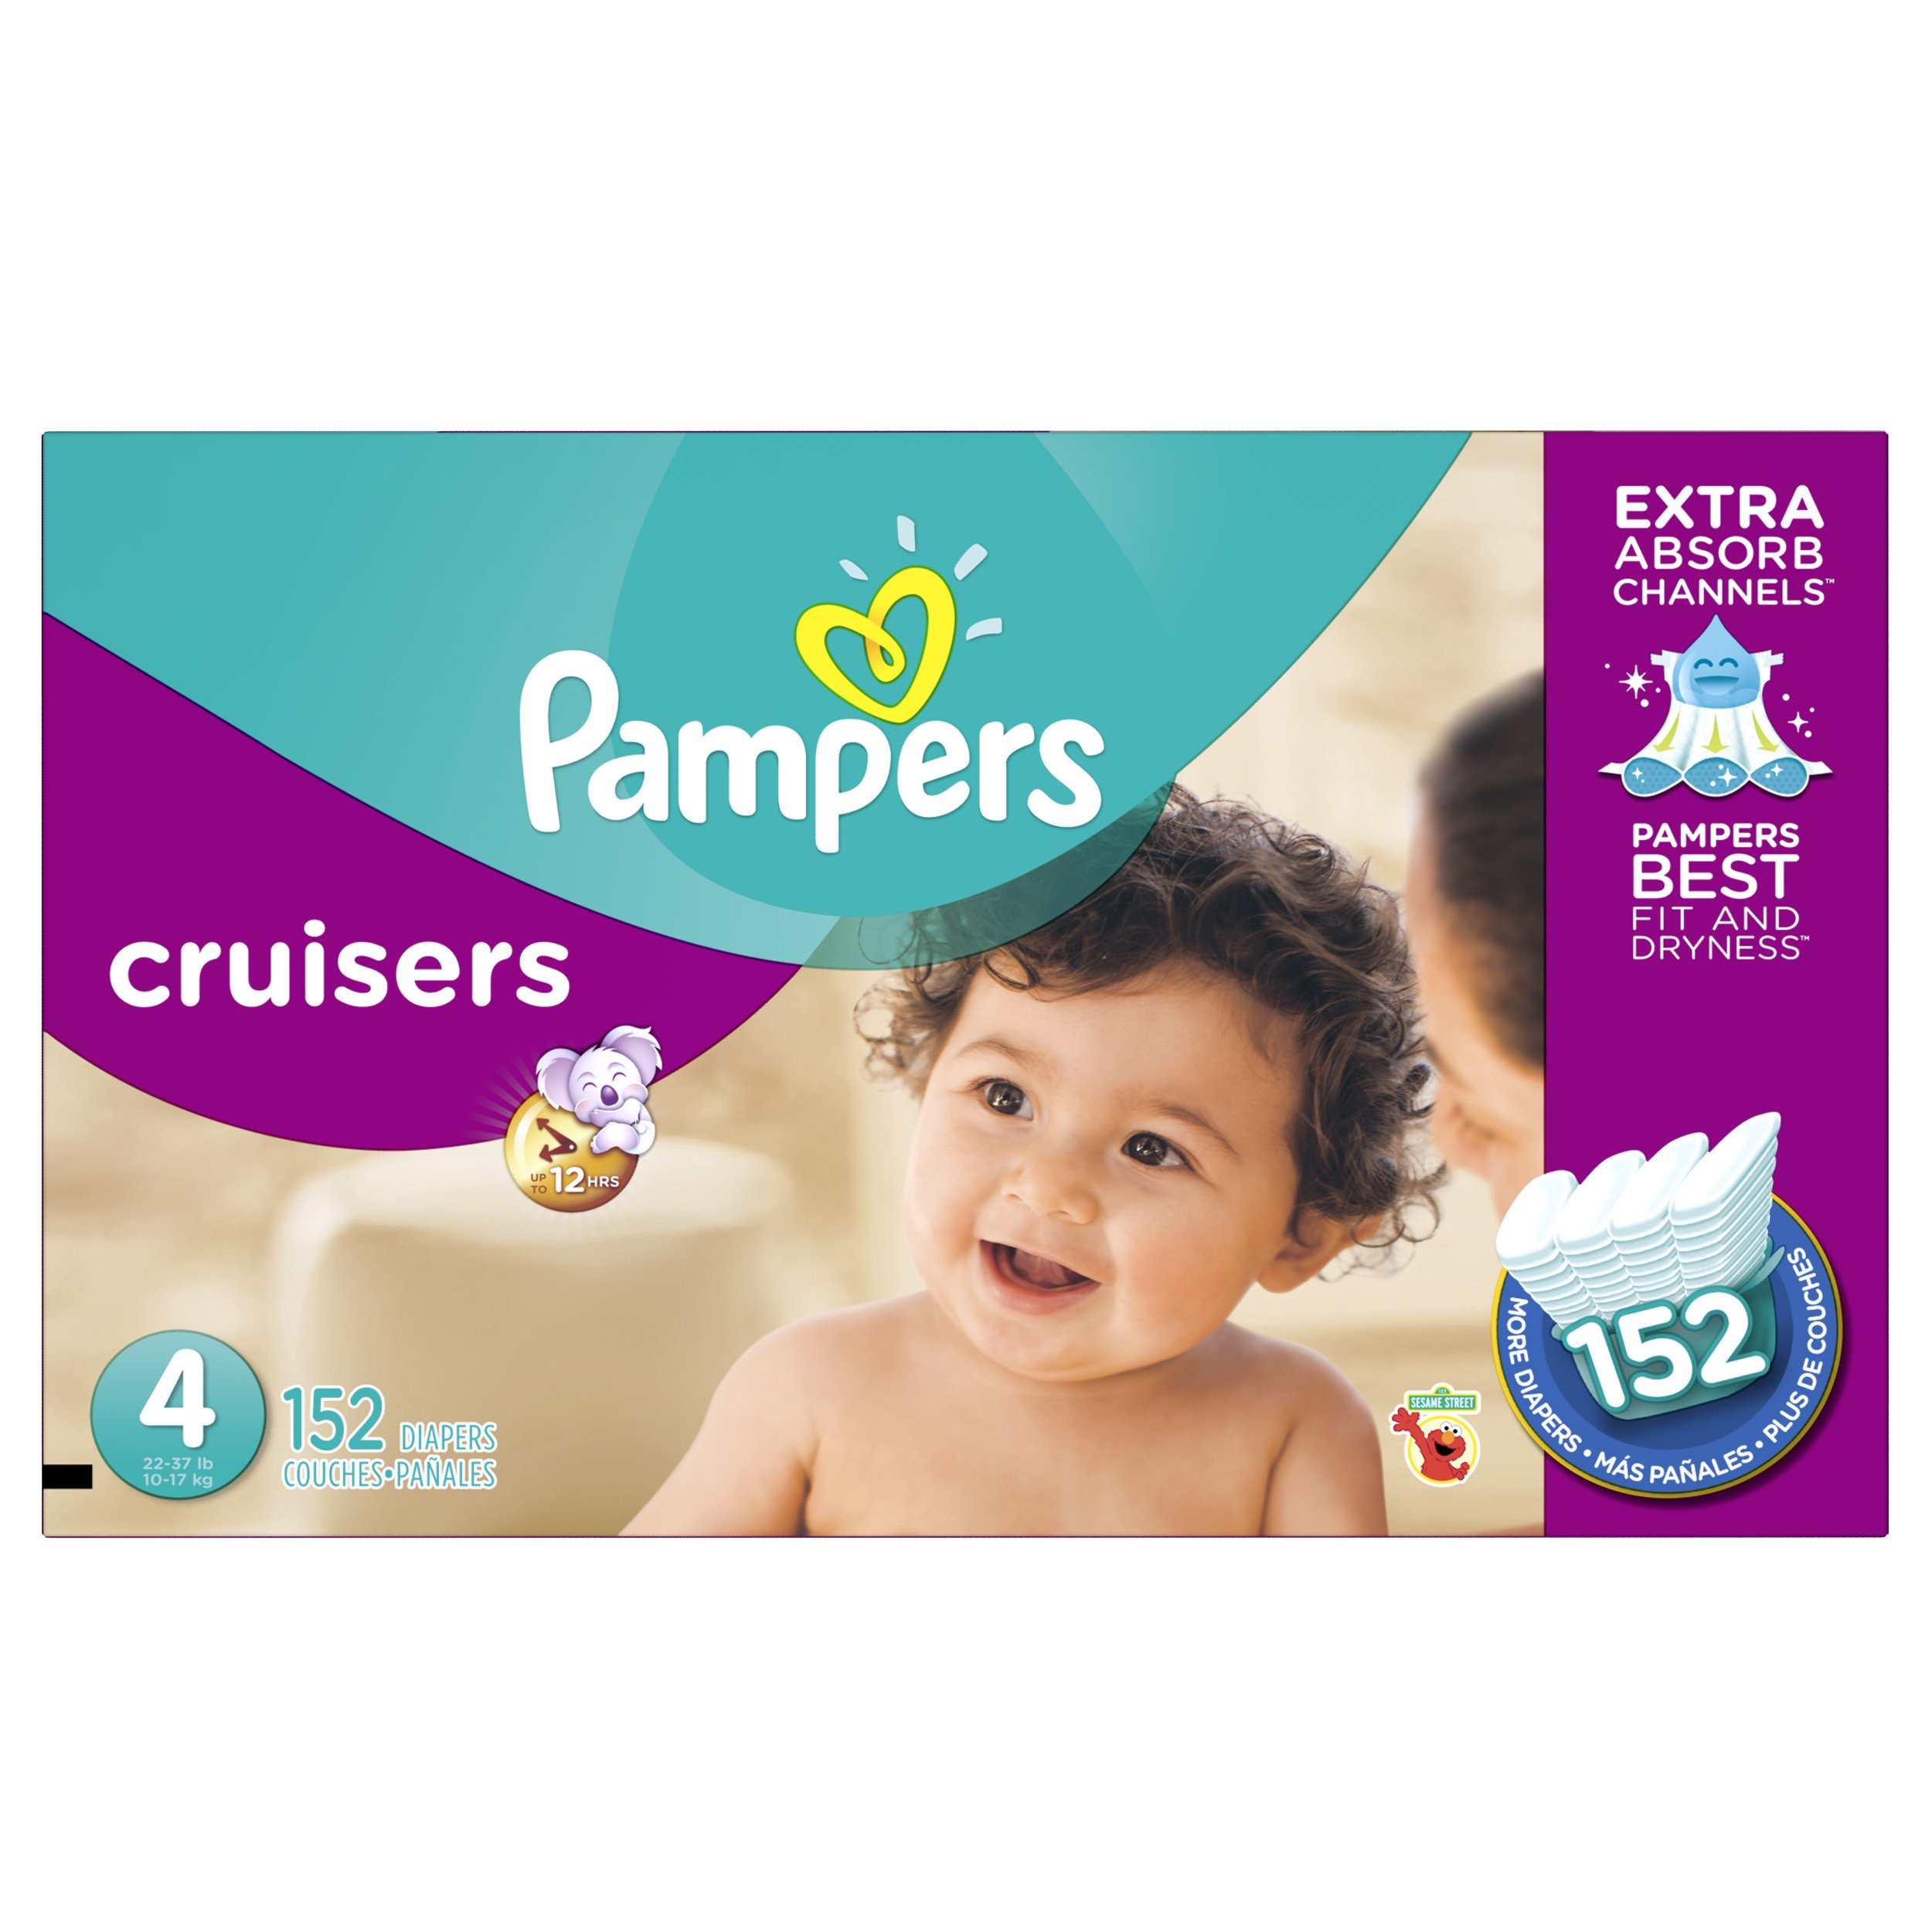 Pampers Cruisers Diapers Size 4 152 Count (old version) by Pampers